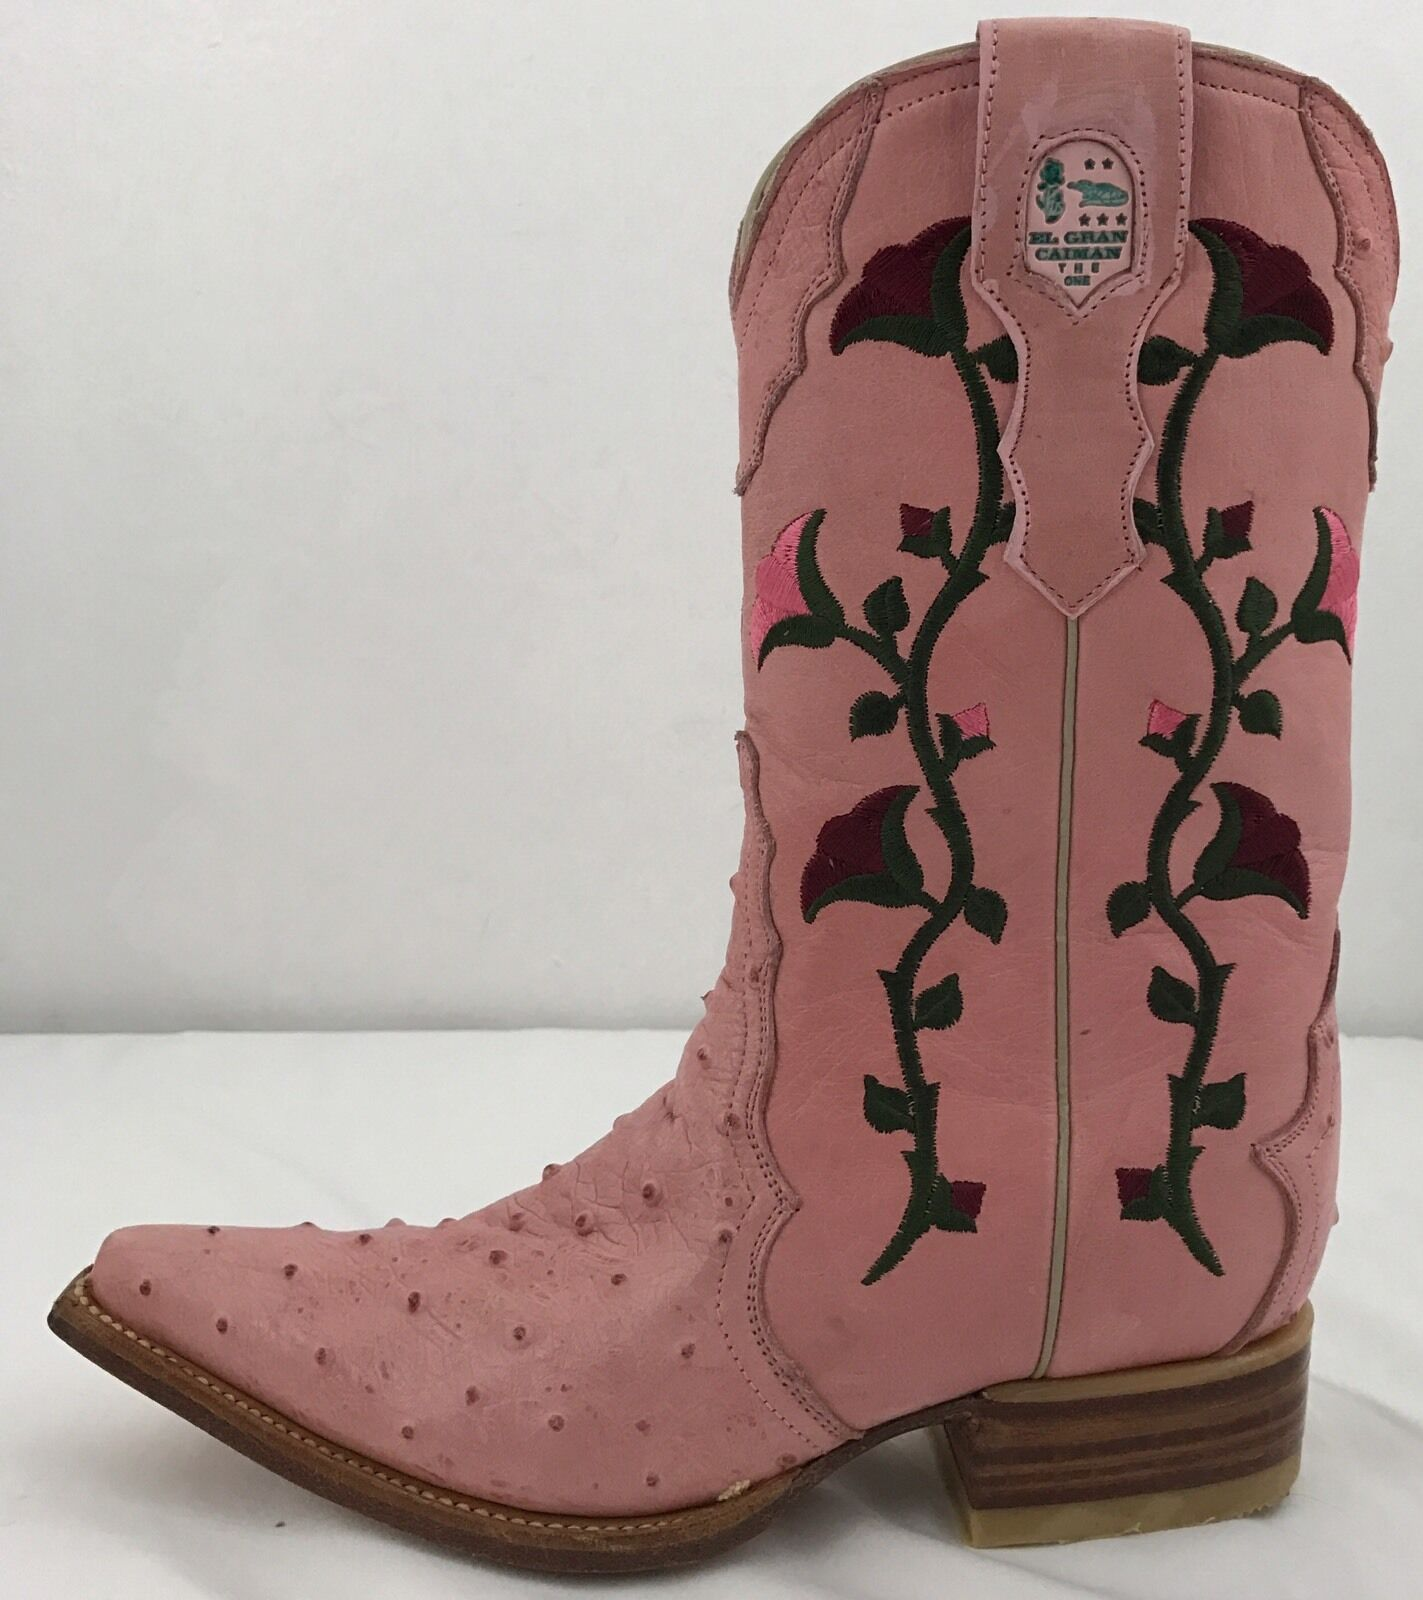 El Gran Caiman Pink Leather Embroidered Cowboy Boots & Belt Size 6